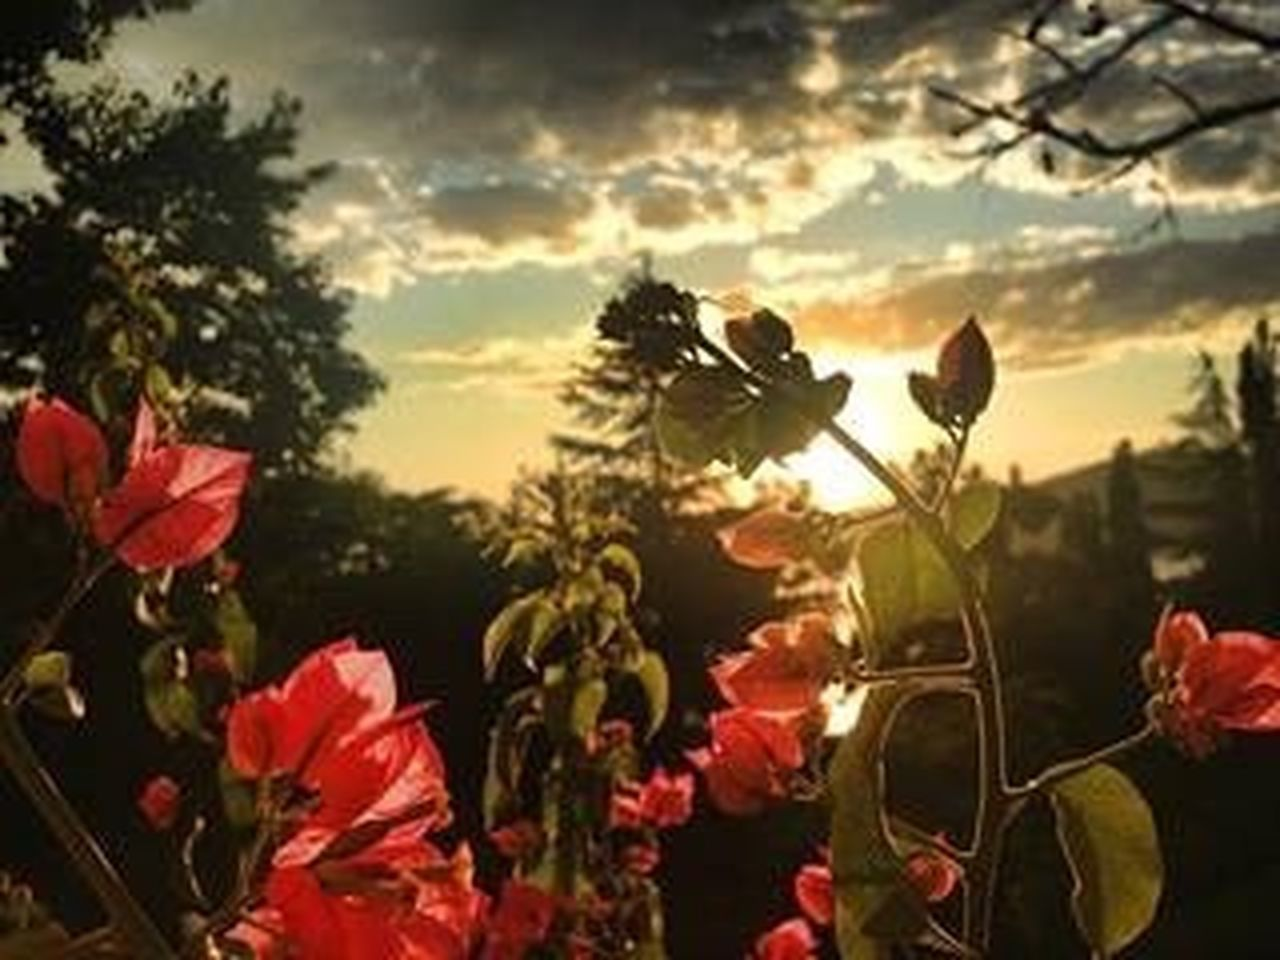 growth, flower, plant, nature, tree, no people, beauty in nature, sunset, cloud - sky, outdoors, close-up, sky, fragility, day, poppy, freshness, flower head